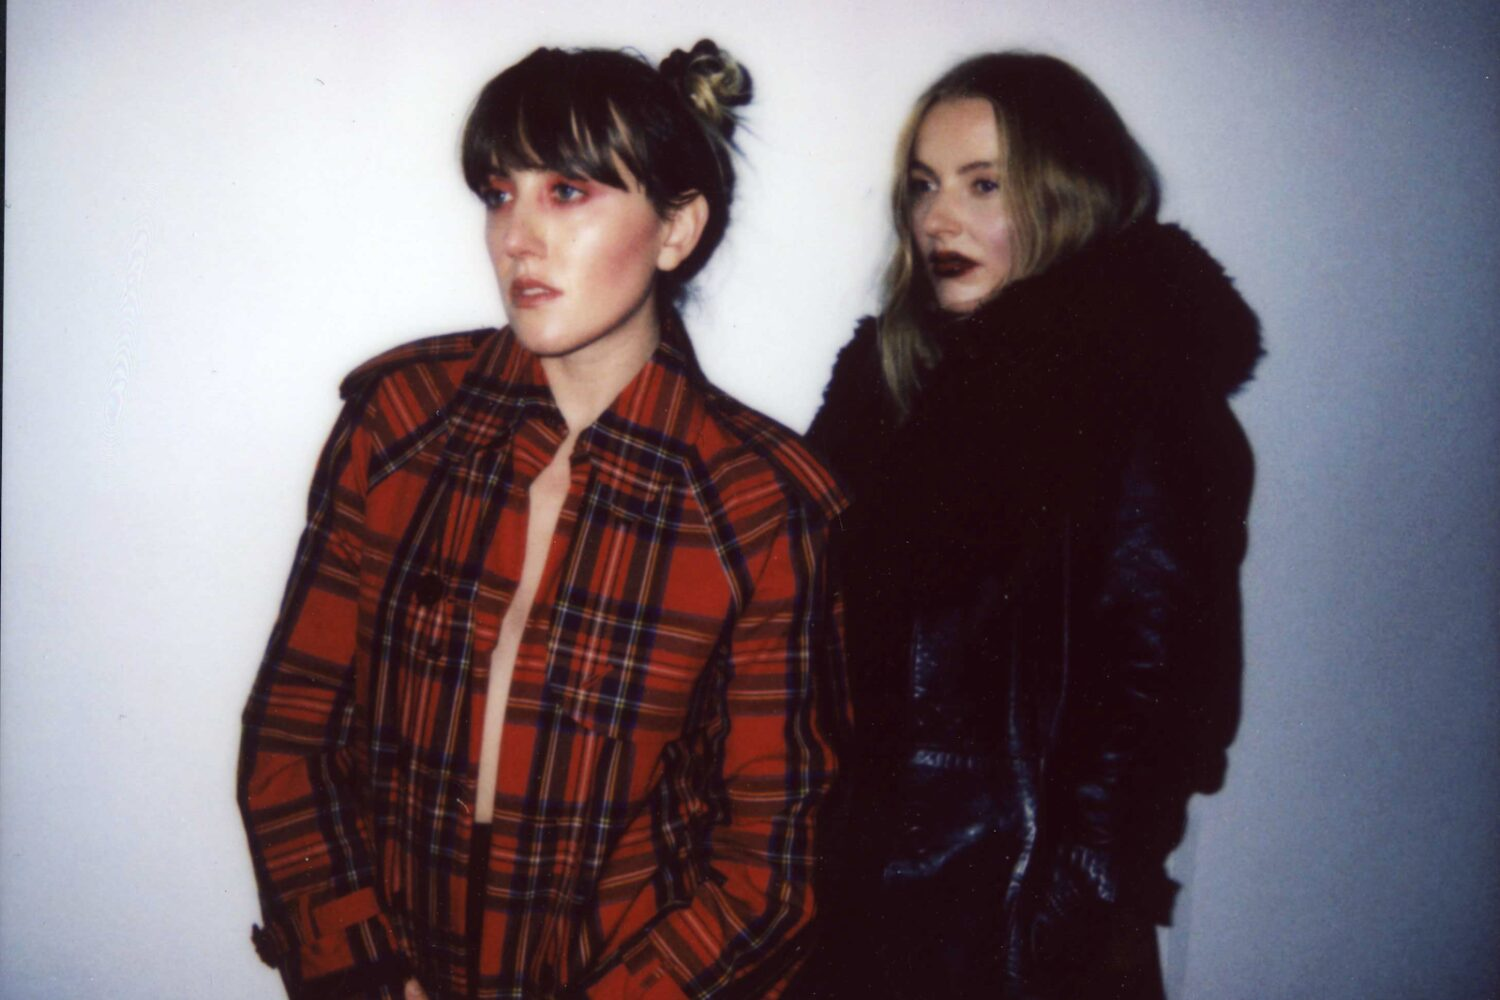 IDER reveal 'Cross Yourself' video